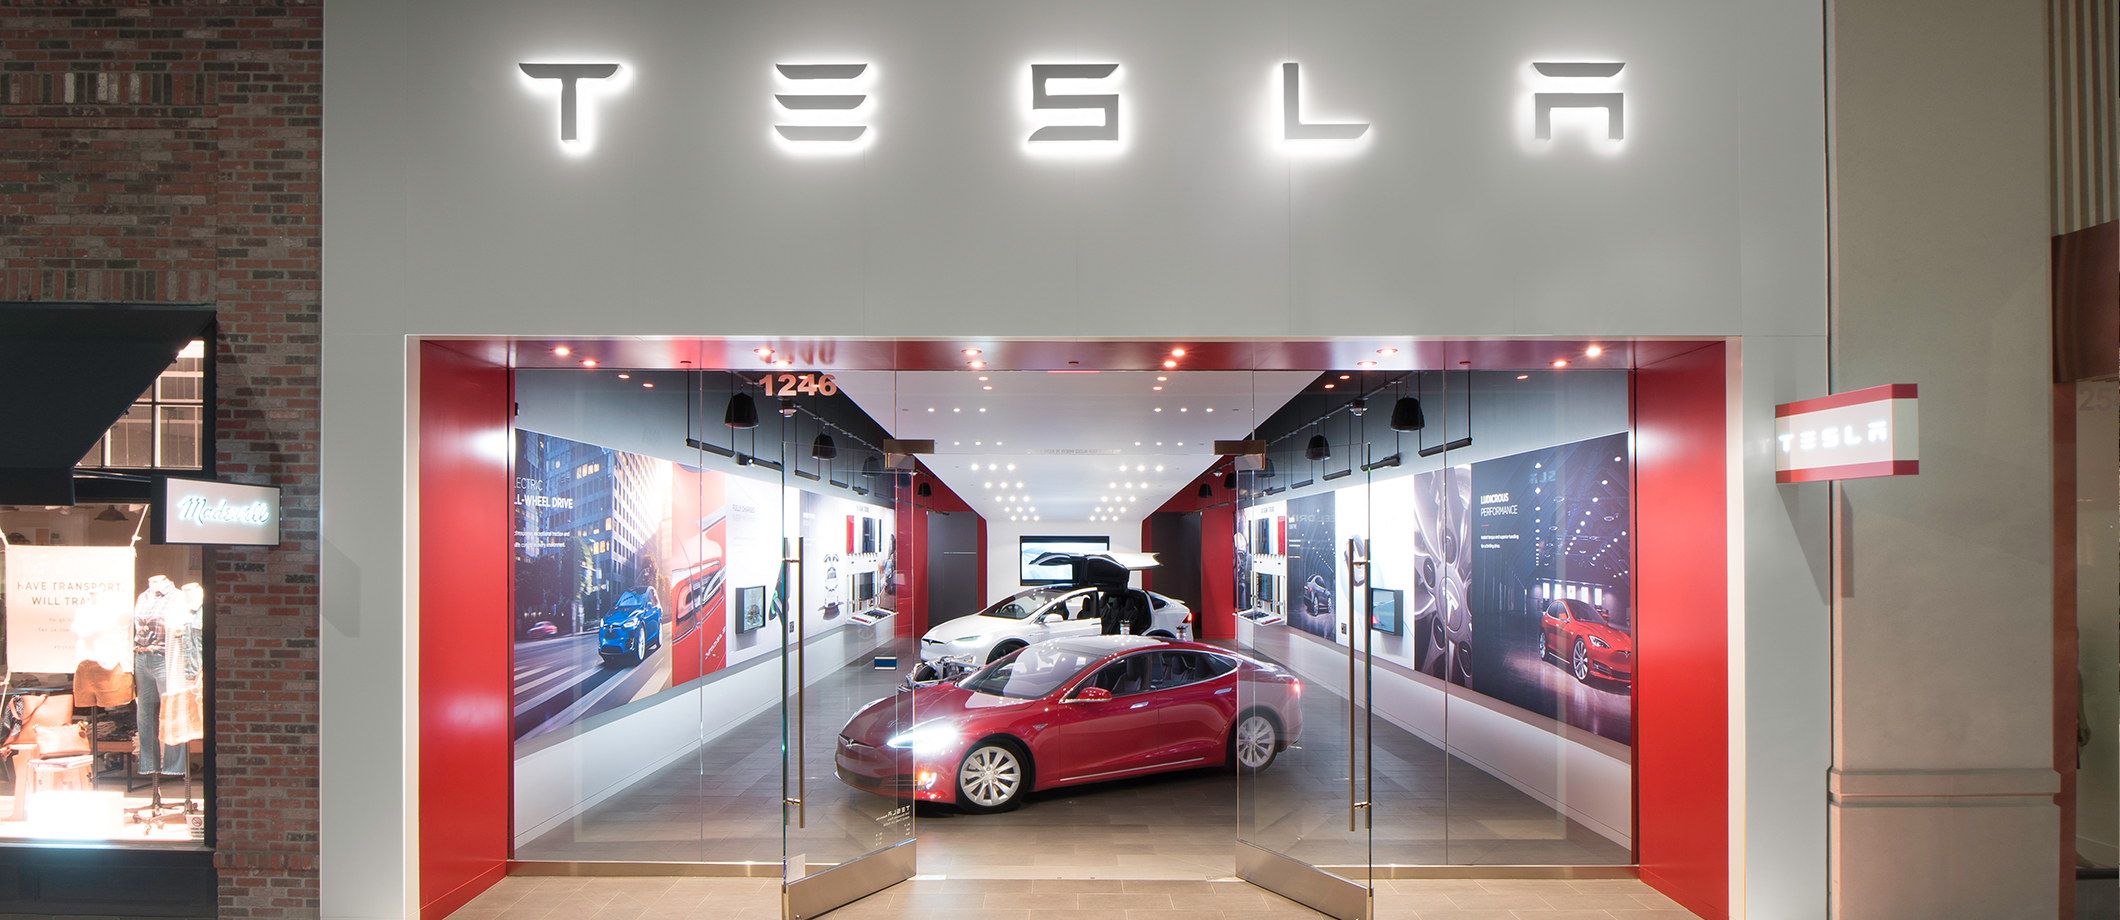 How many tesla stores are there